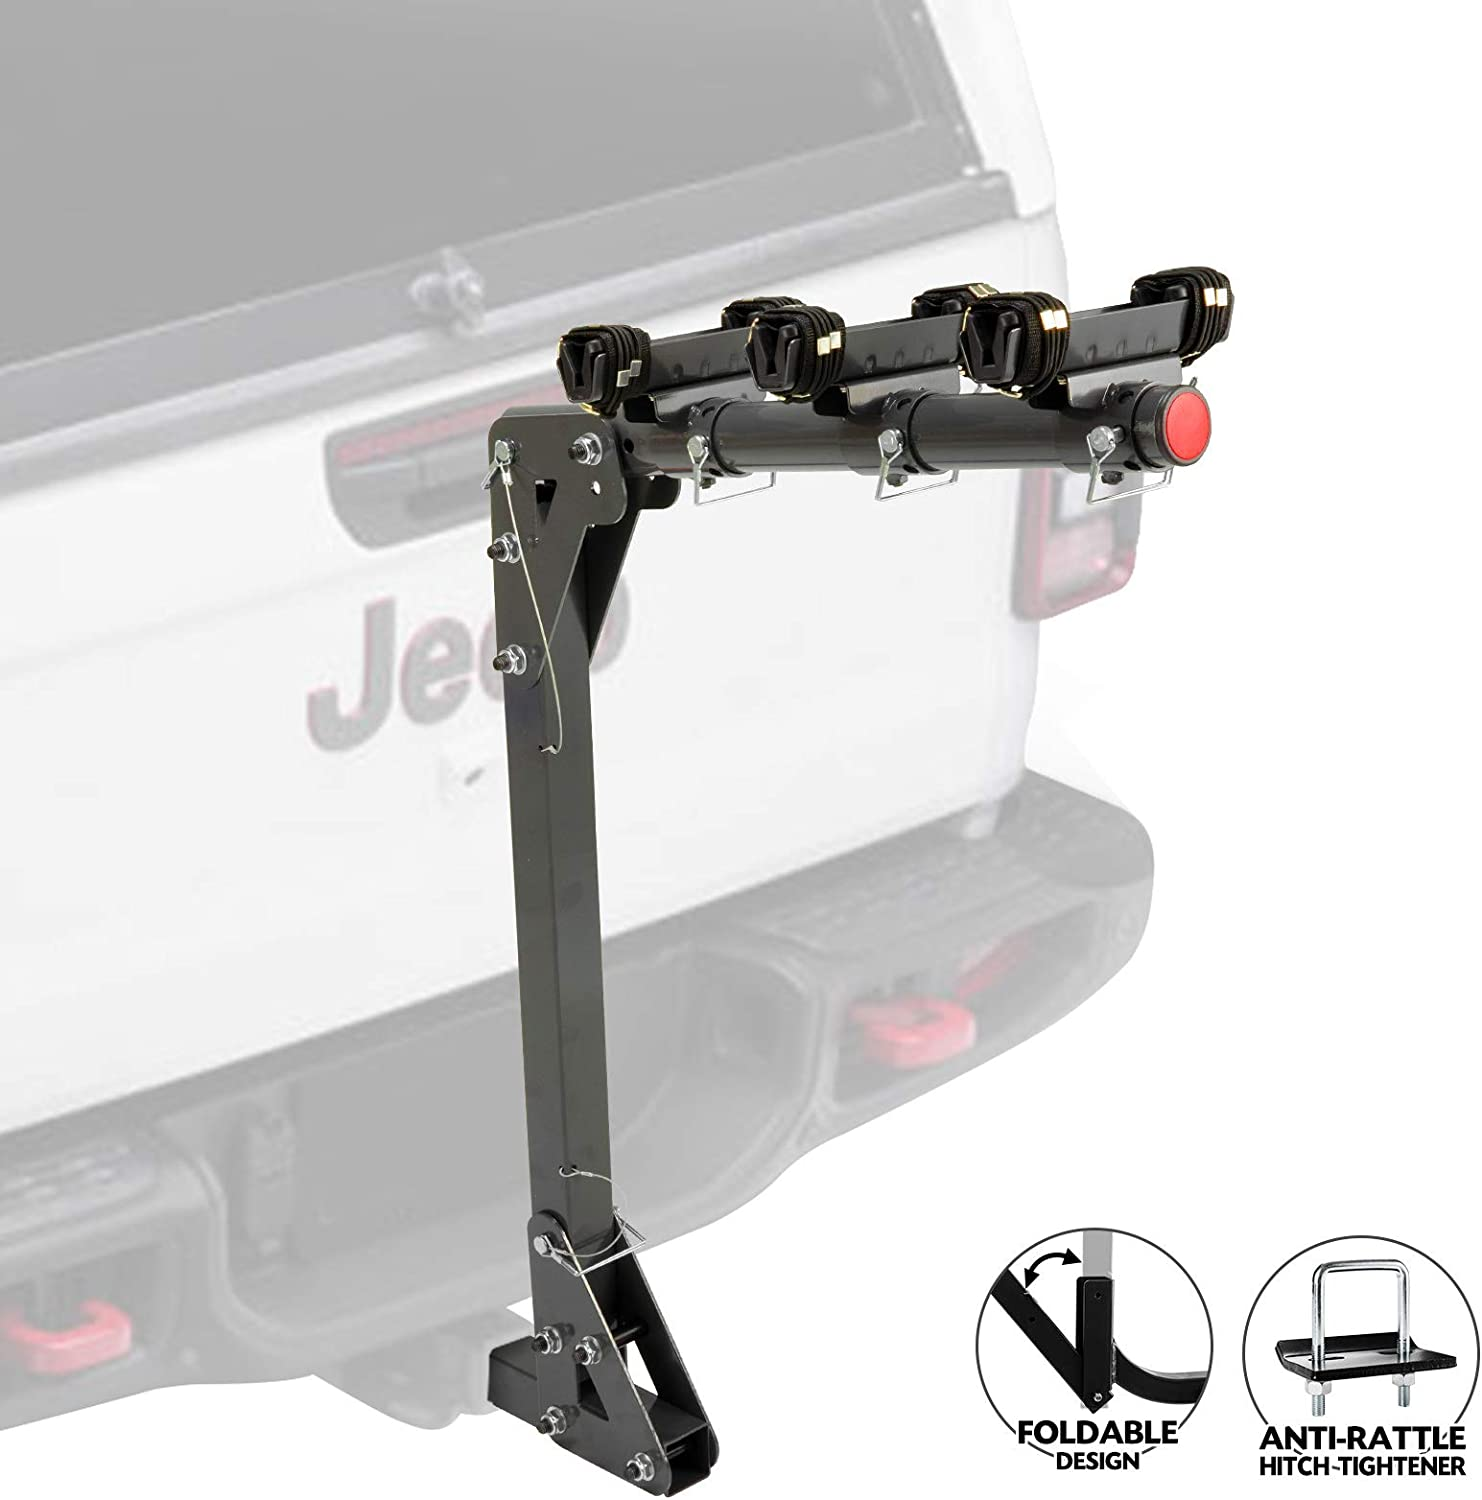 Bicycle Carrier Racks Adjustable Cradles for All Bike with//Without Cross-Bar FieryRed 3-Bike Racks for 2 inch Hitch